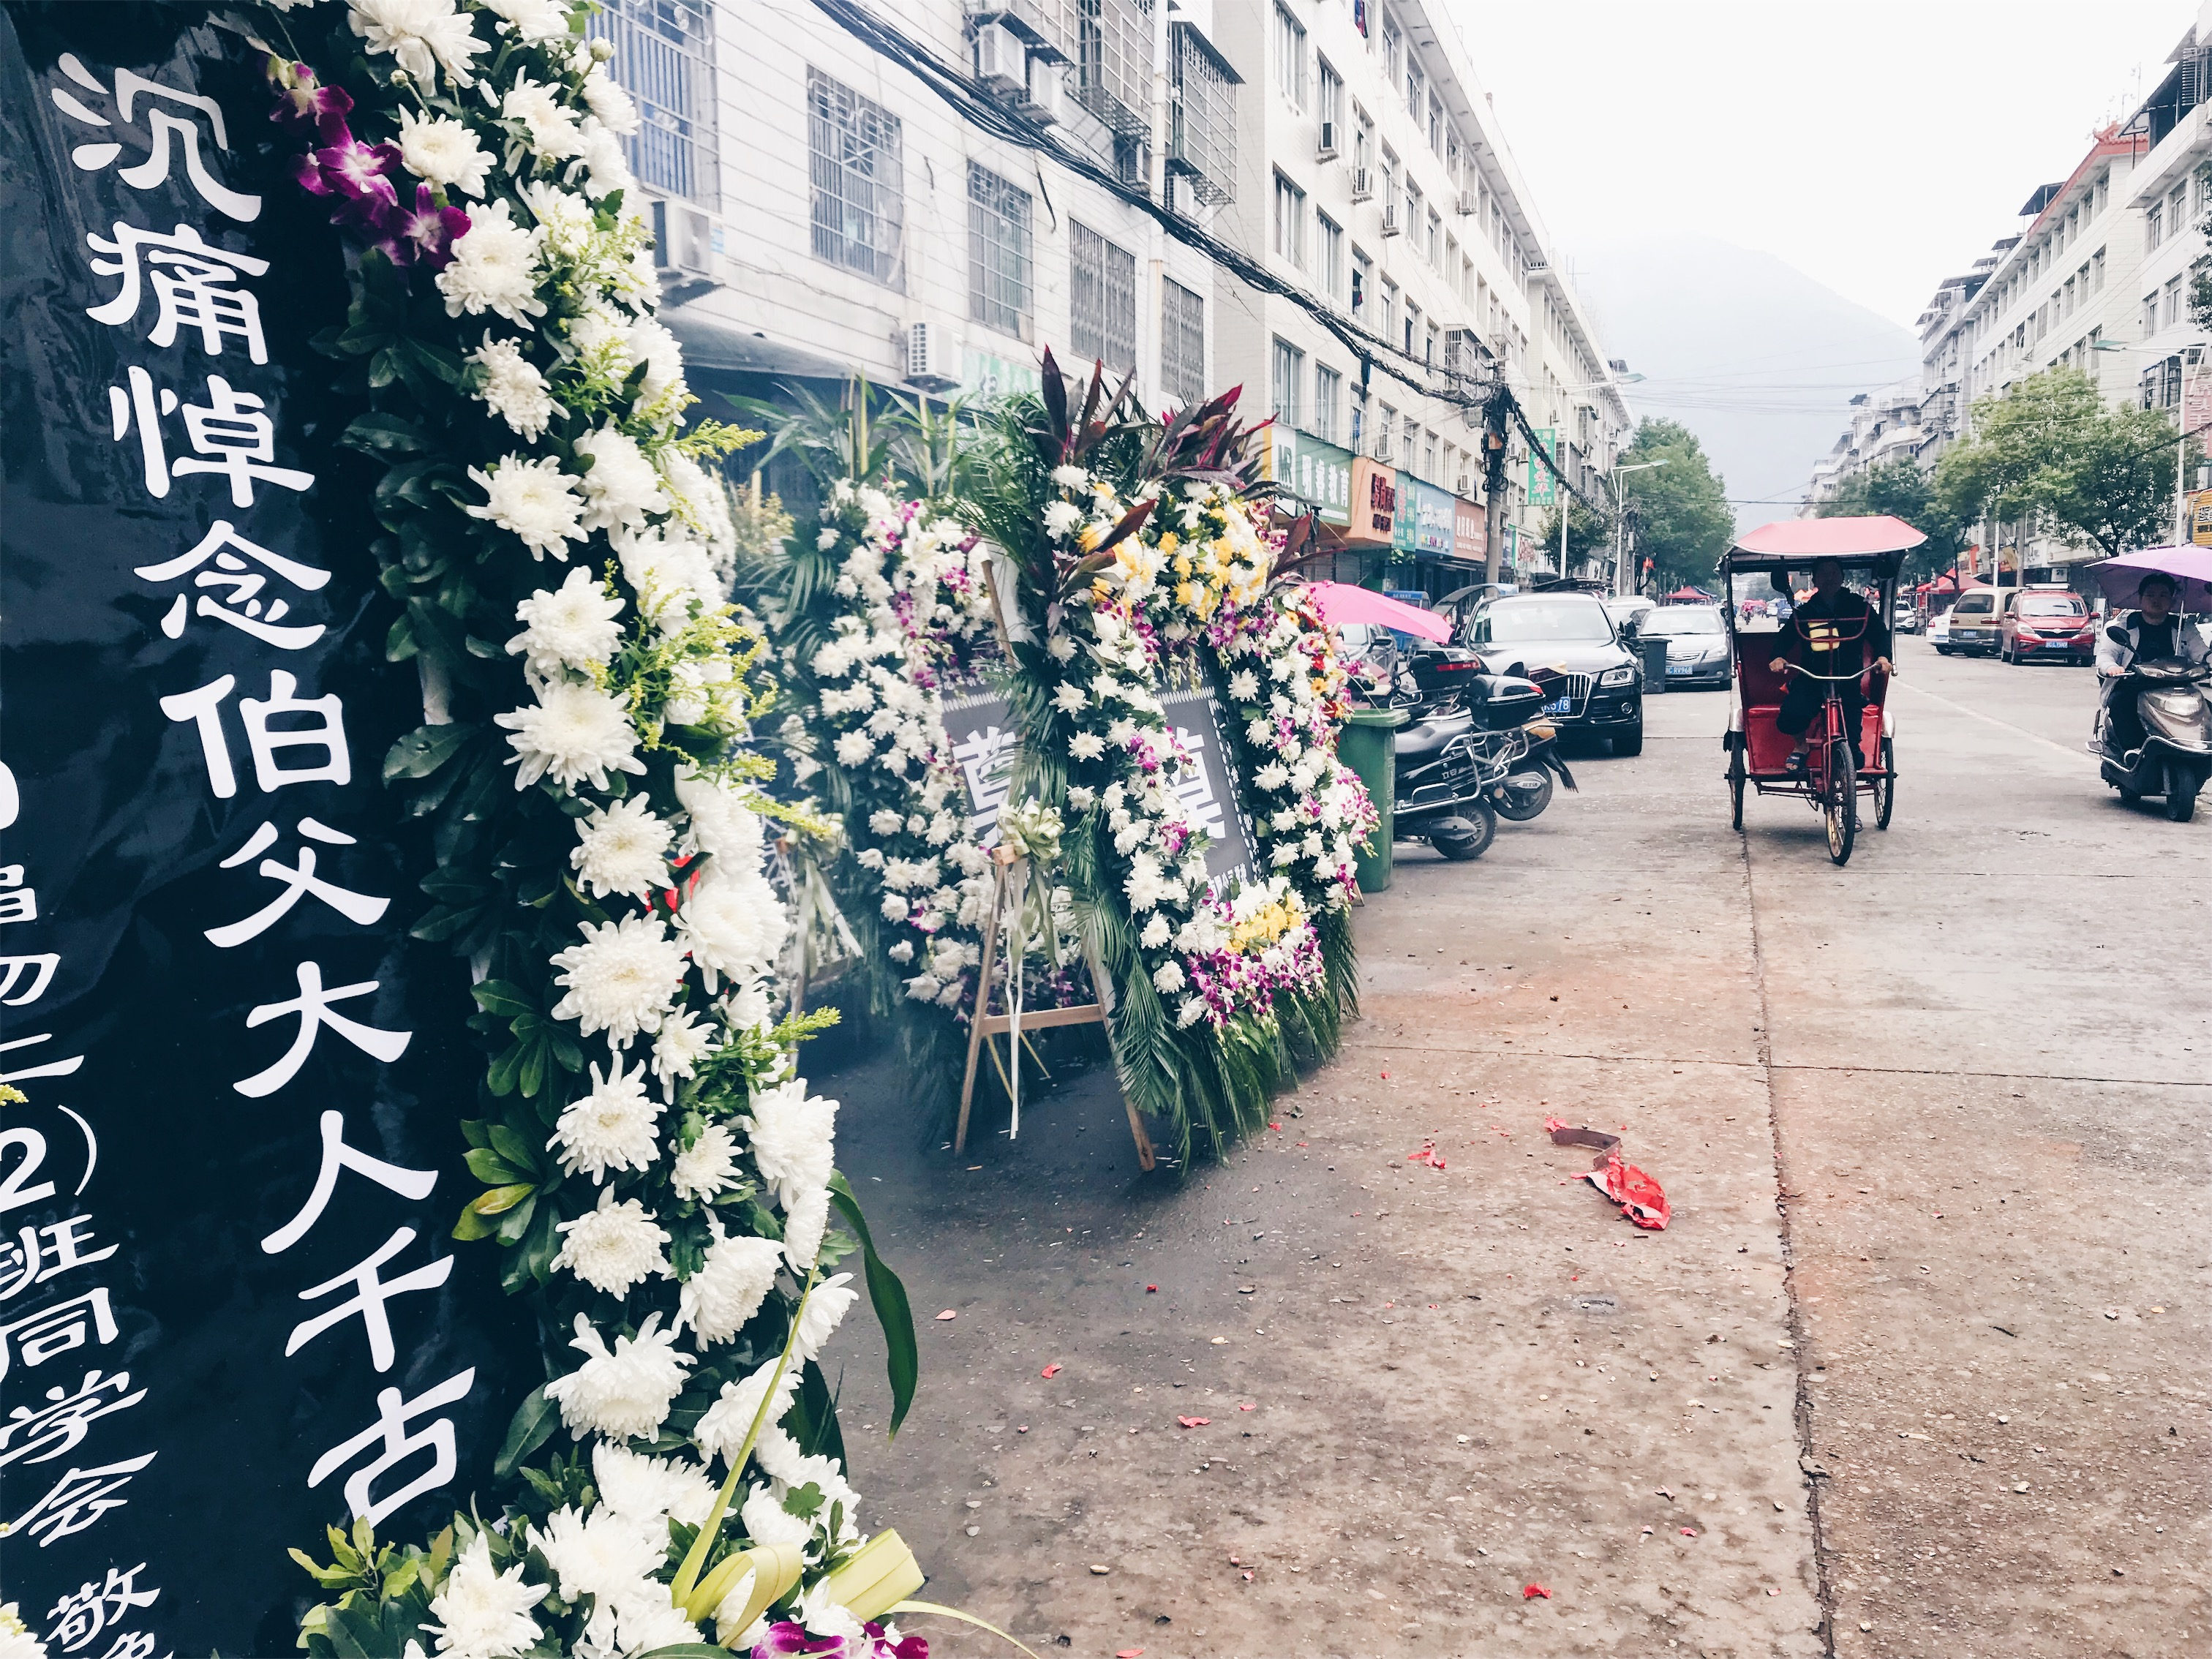 Chinese funeral - flower garlands as last tributes of respects from friends and family